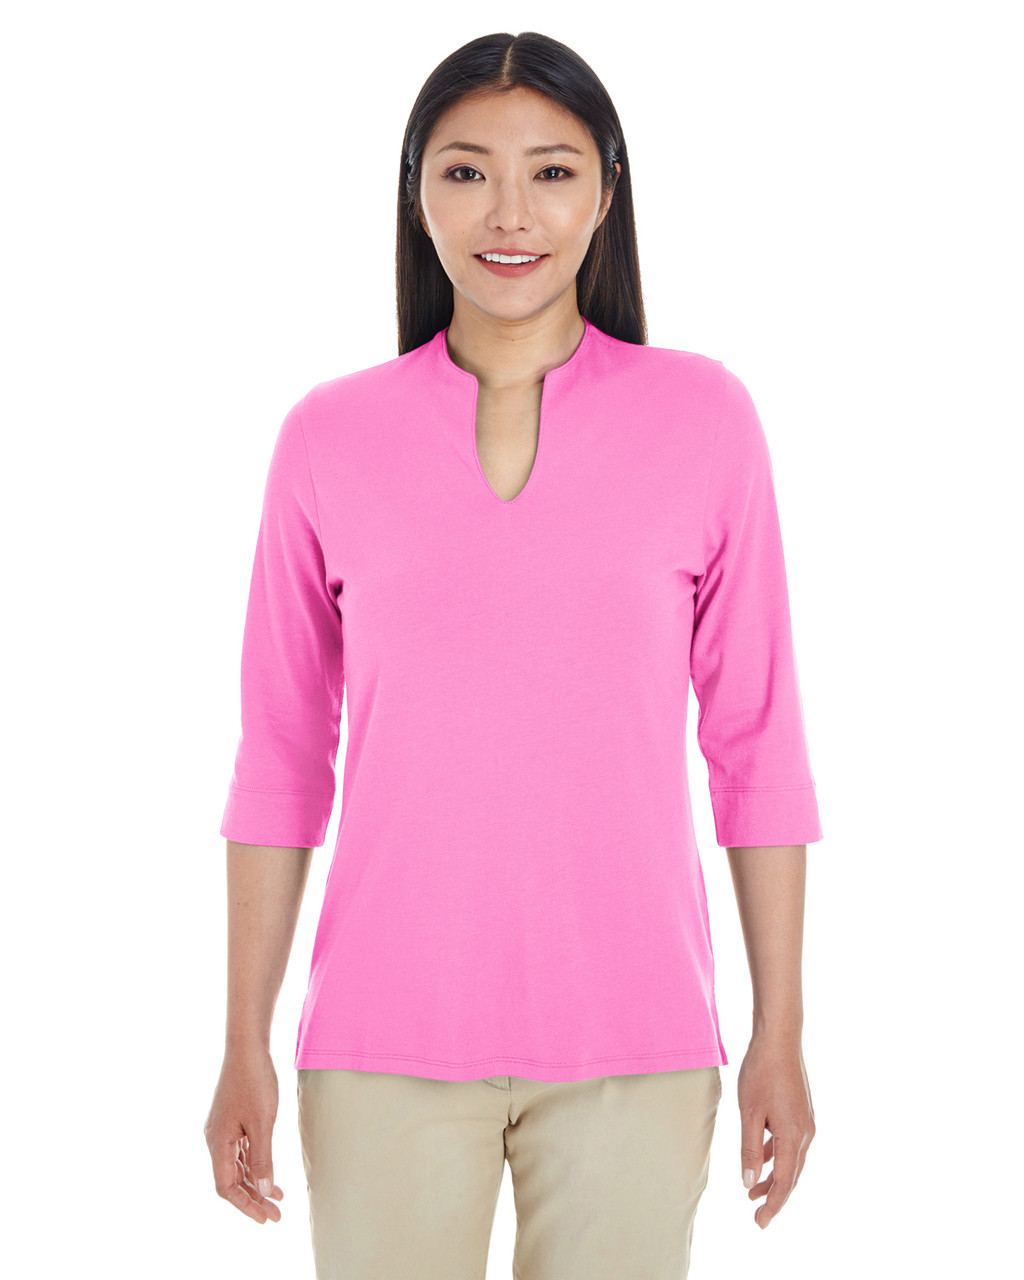 Charity Pink - DP188W Devon & Jones Ladies' Perfect Fit™ Tailored Open Neckline Top